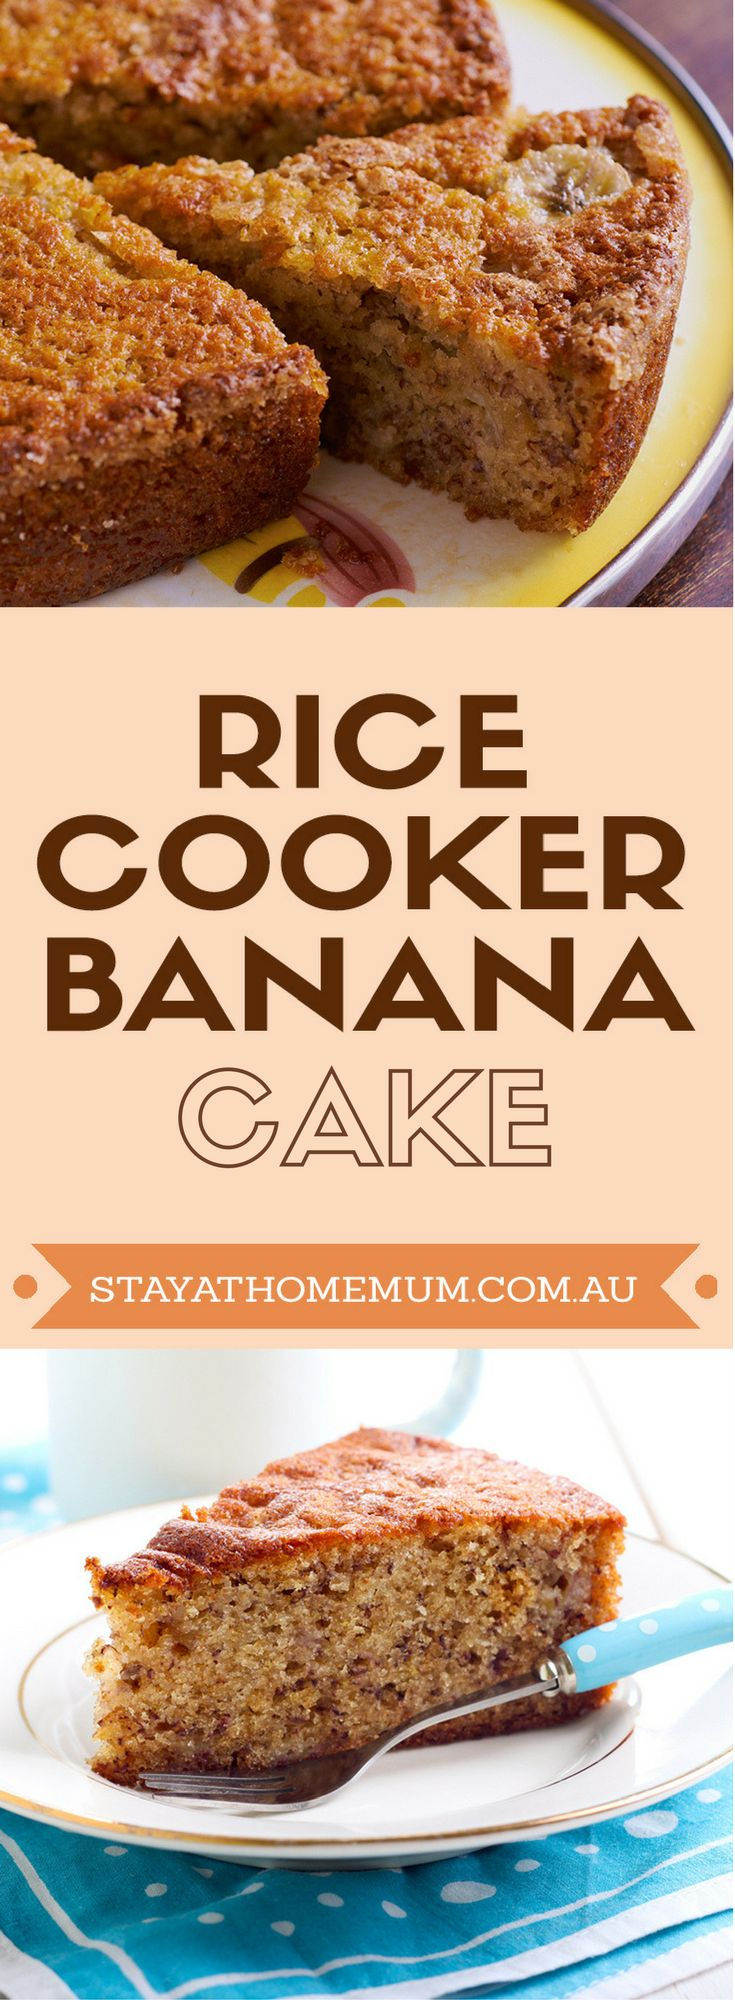 Bored and got nothing to do on a winter night? Try this Rice Cooker Banana Cake recipe in your rice cooker!